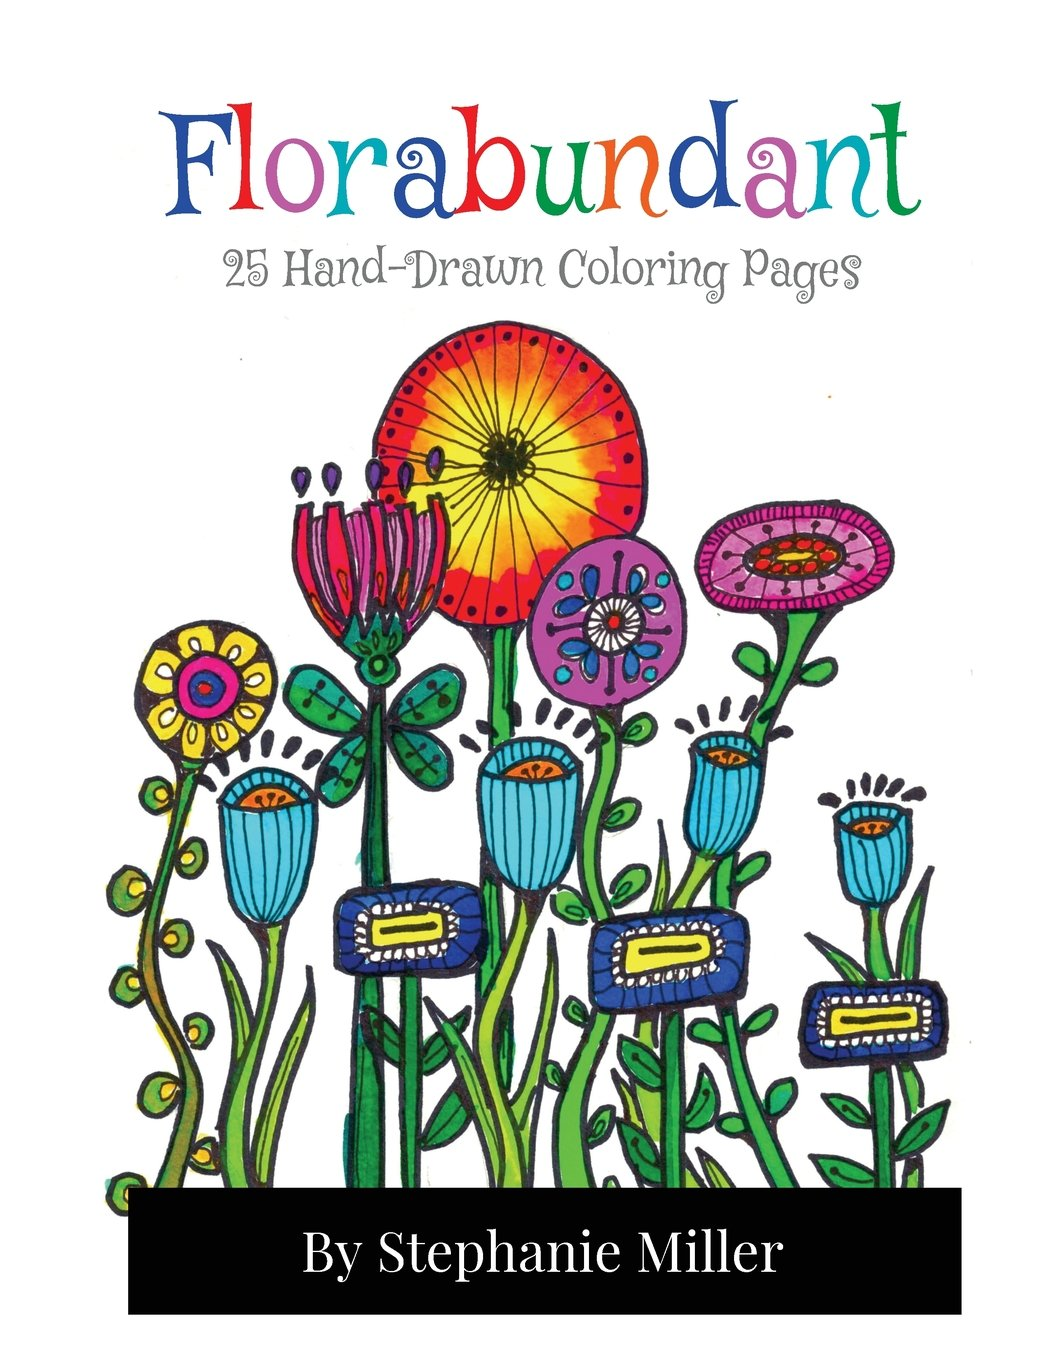 Florabundant 25 Hand Drawn Coloring Pages Miller Stephanie W 9781719275118 Amazon Com Books